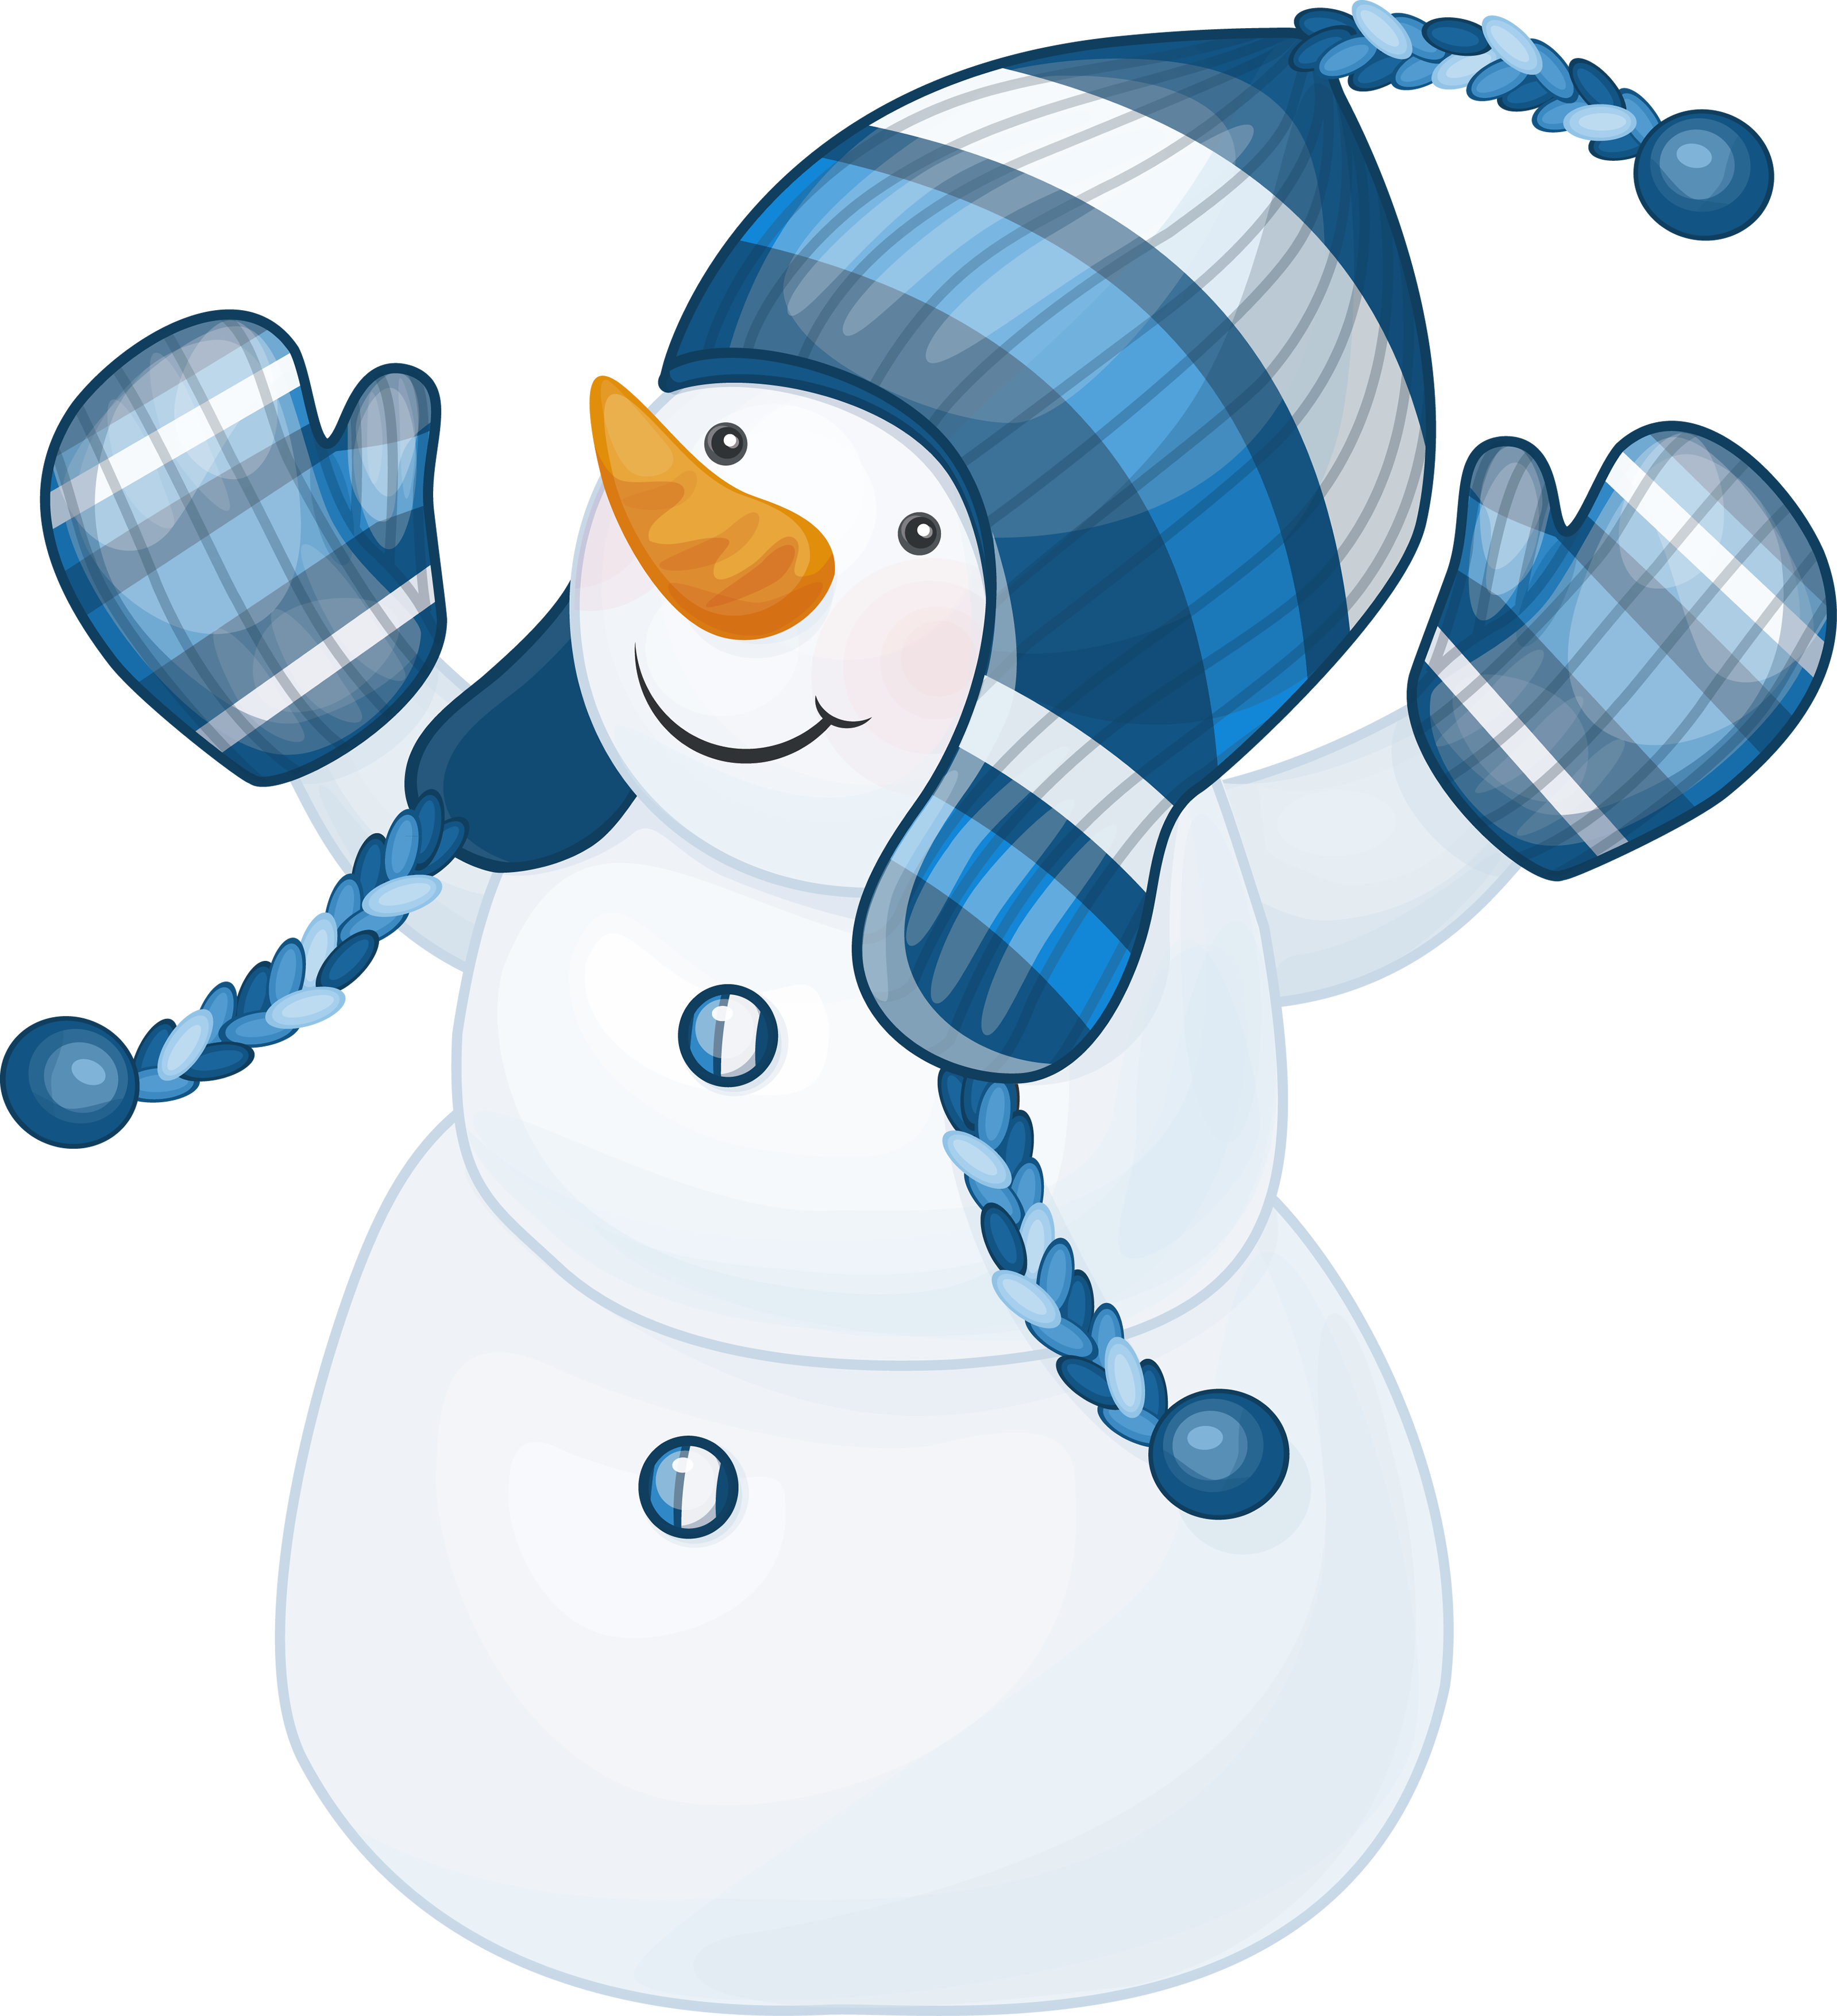 snowman png images free download snowman clipart snowmen pictures free clip art snowman png images free download